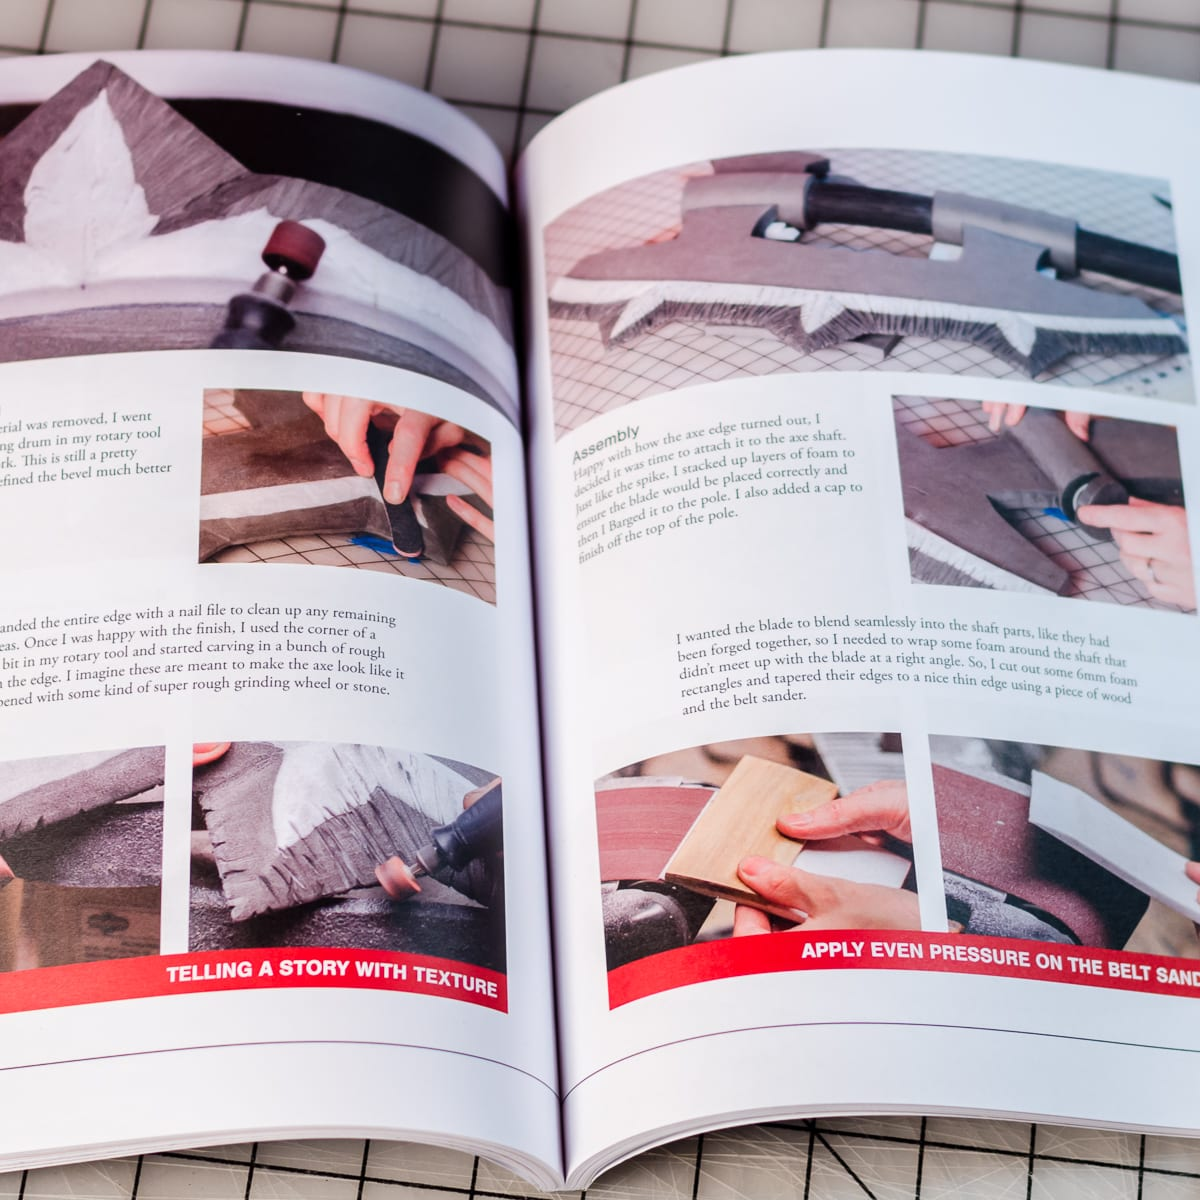 Foamsmith 2: How to Forge Foam Weapons – Print Book